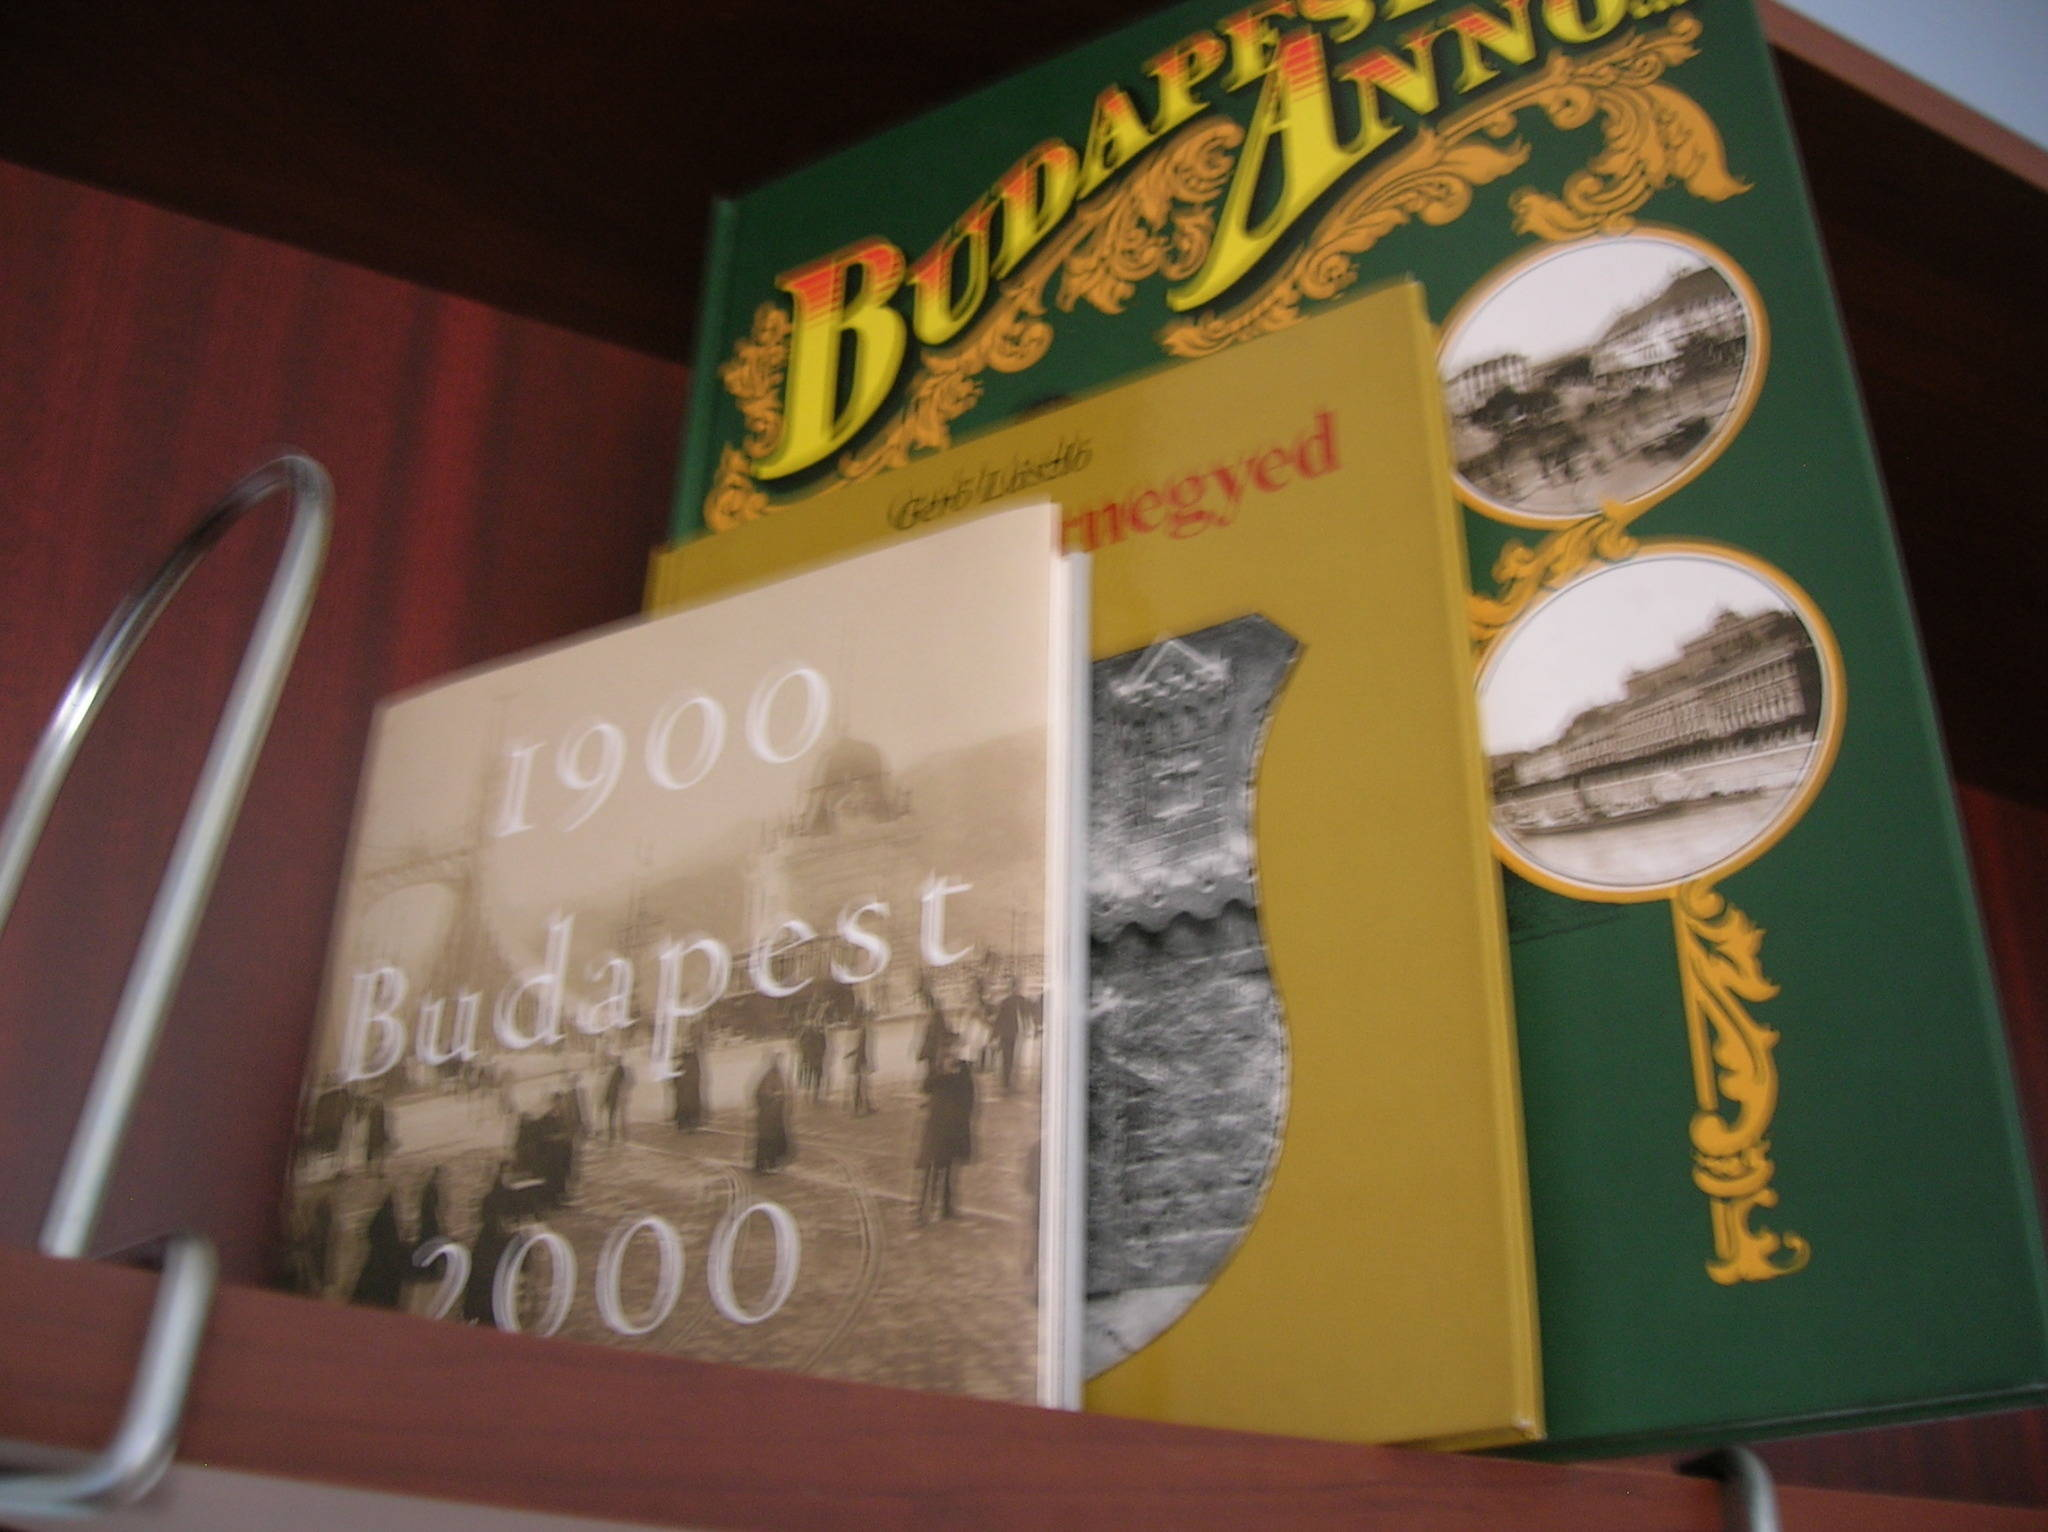 Hello Budapest Apartman - Books about the Castle